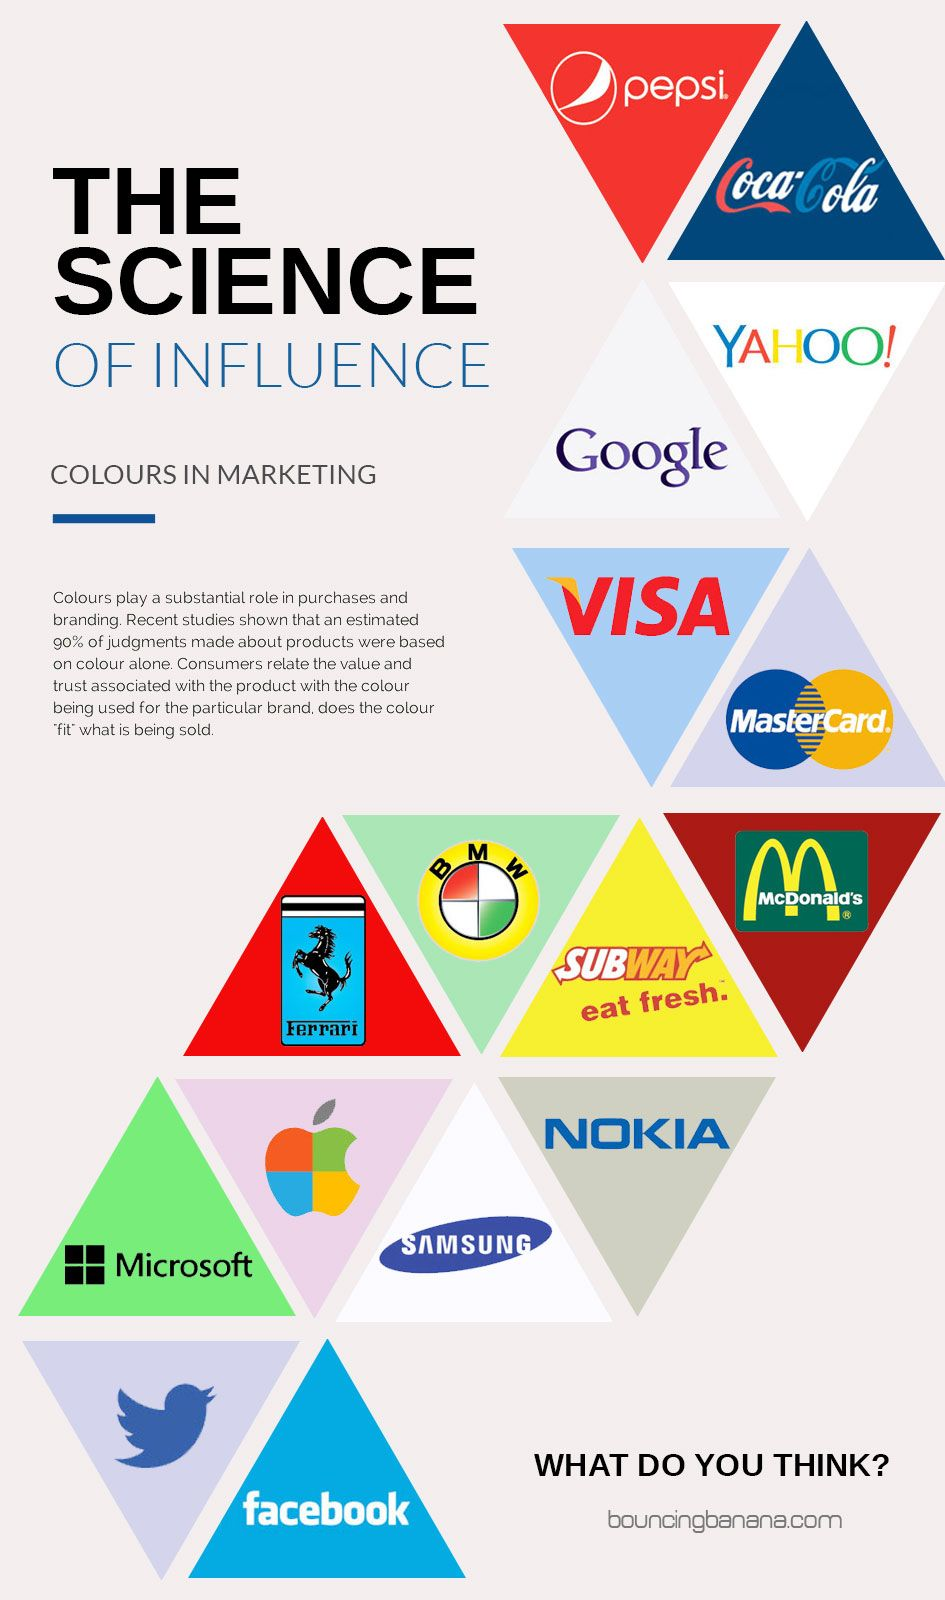 Colour Theory applied to branding and marketing